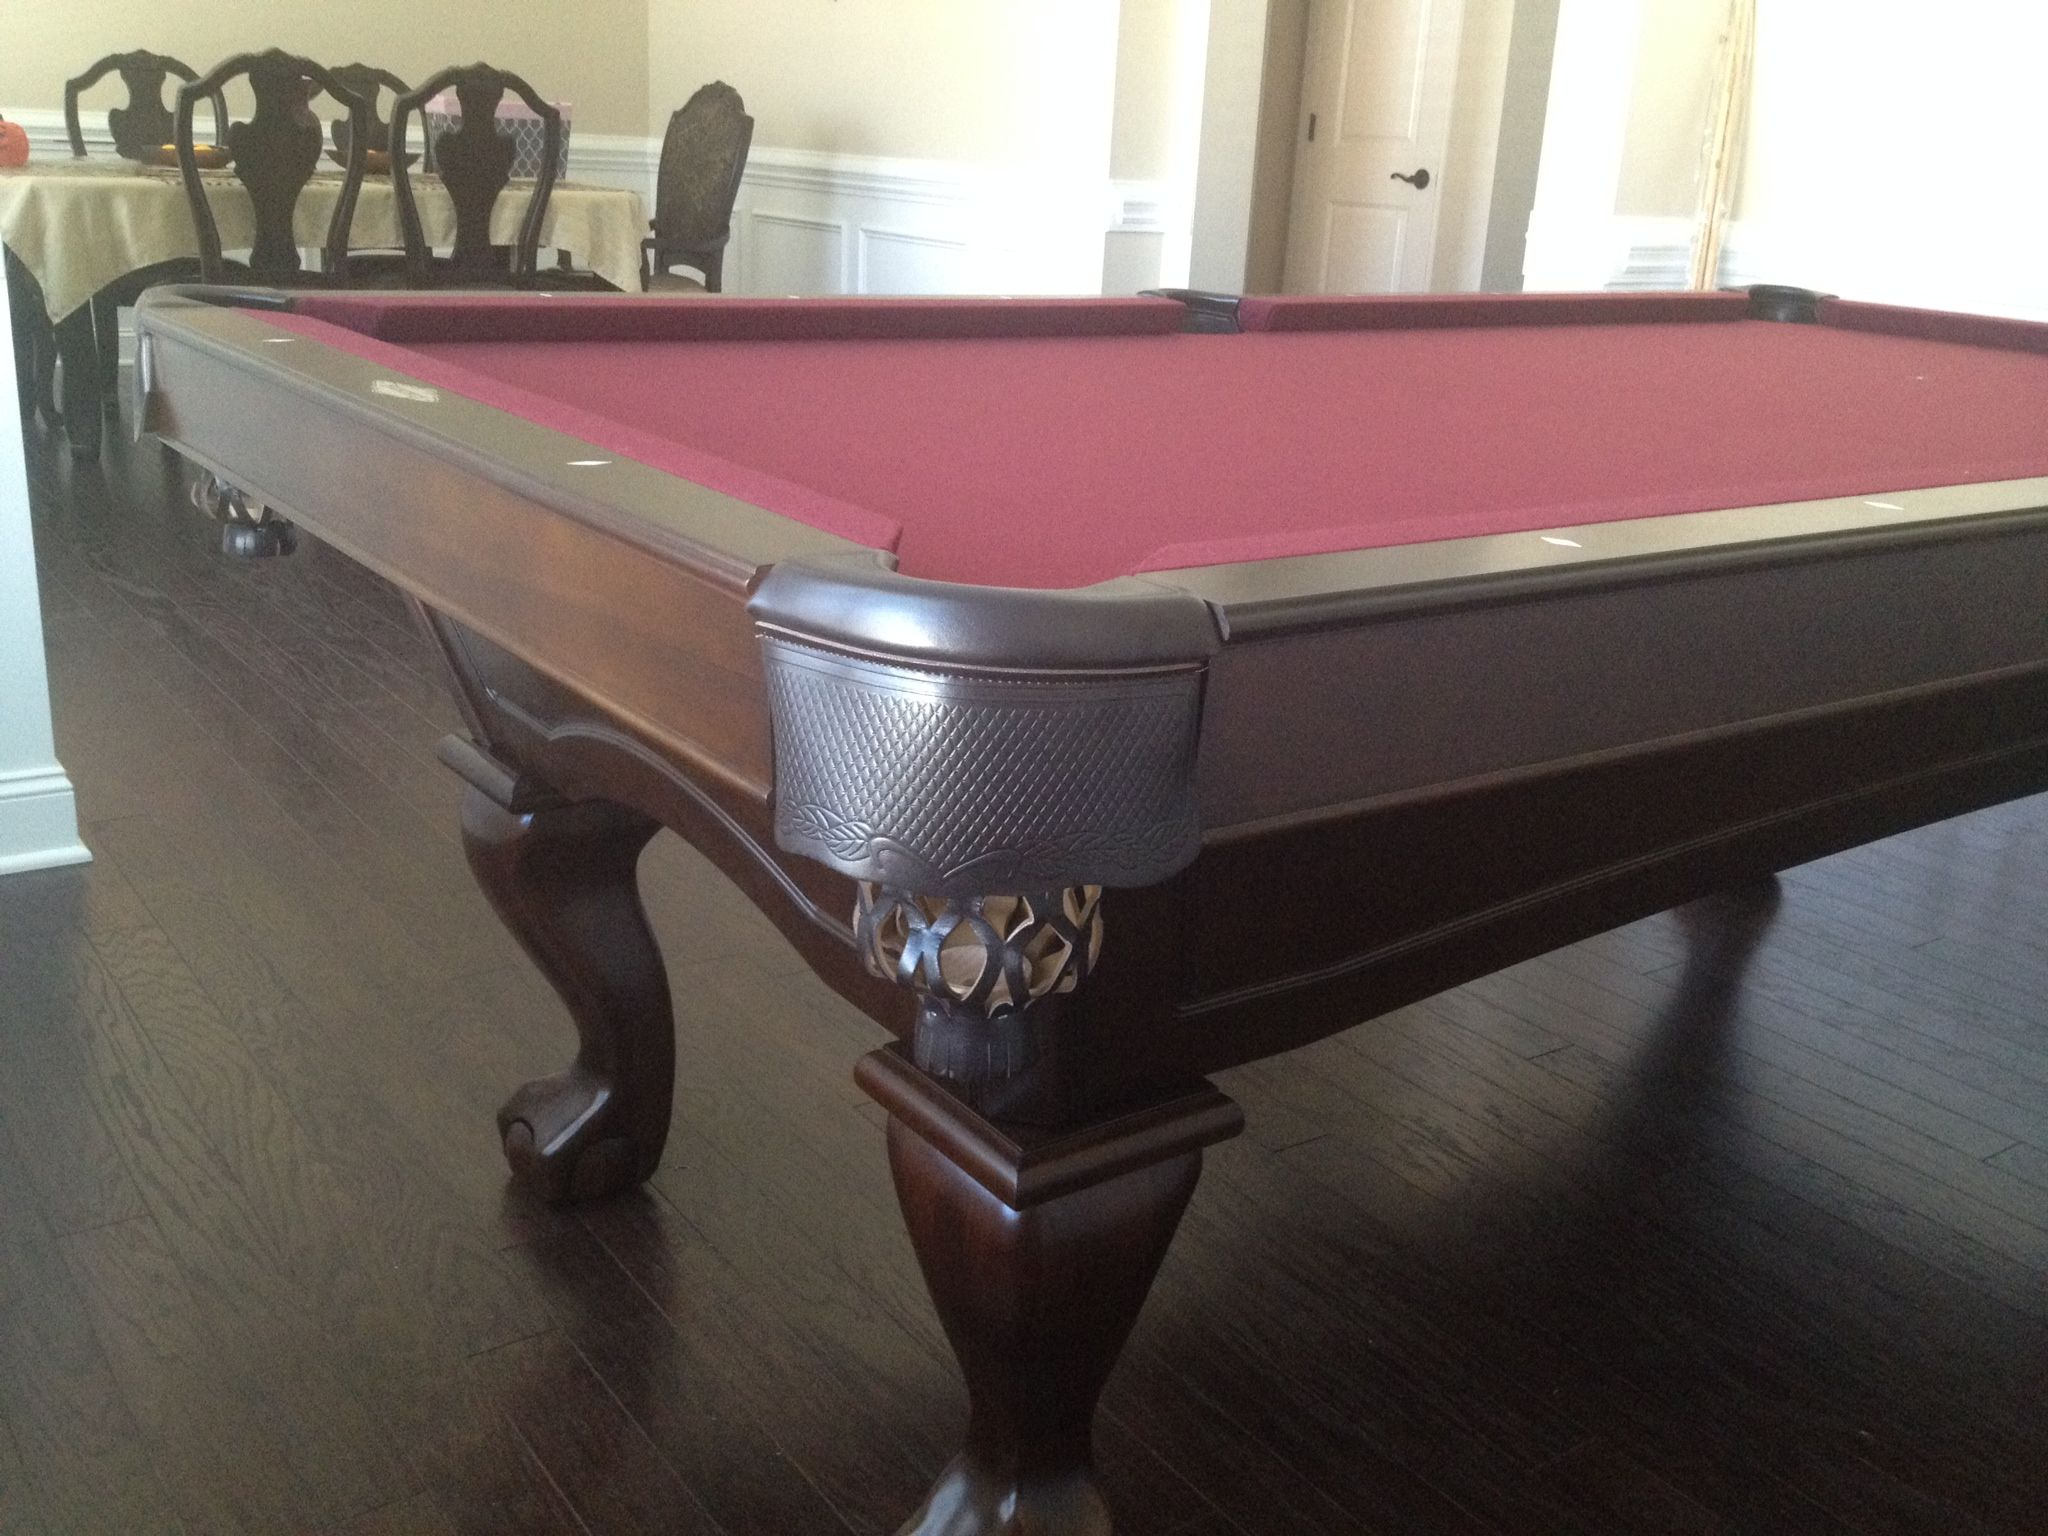 Brunswick Glenwood Tone Pool Table Httpeverythingbilliardsnet - Brunswick diamond pool table